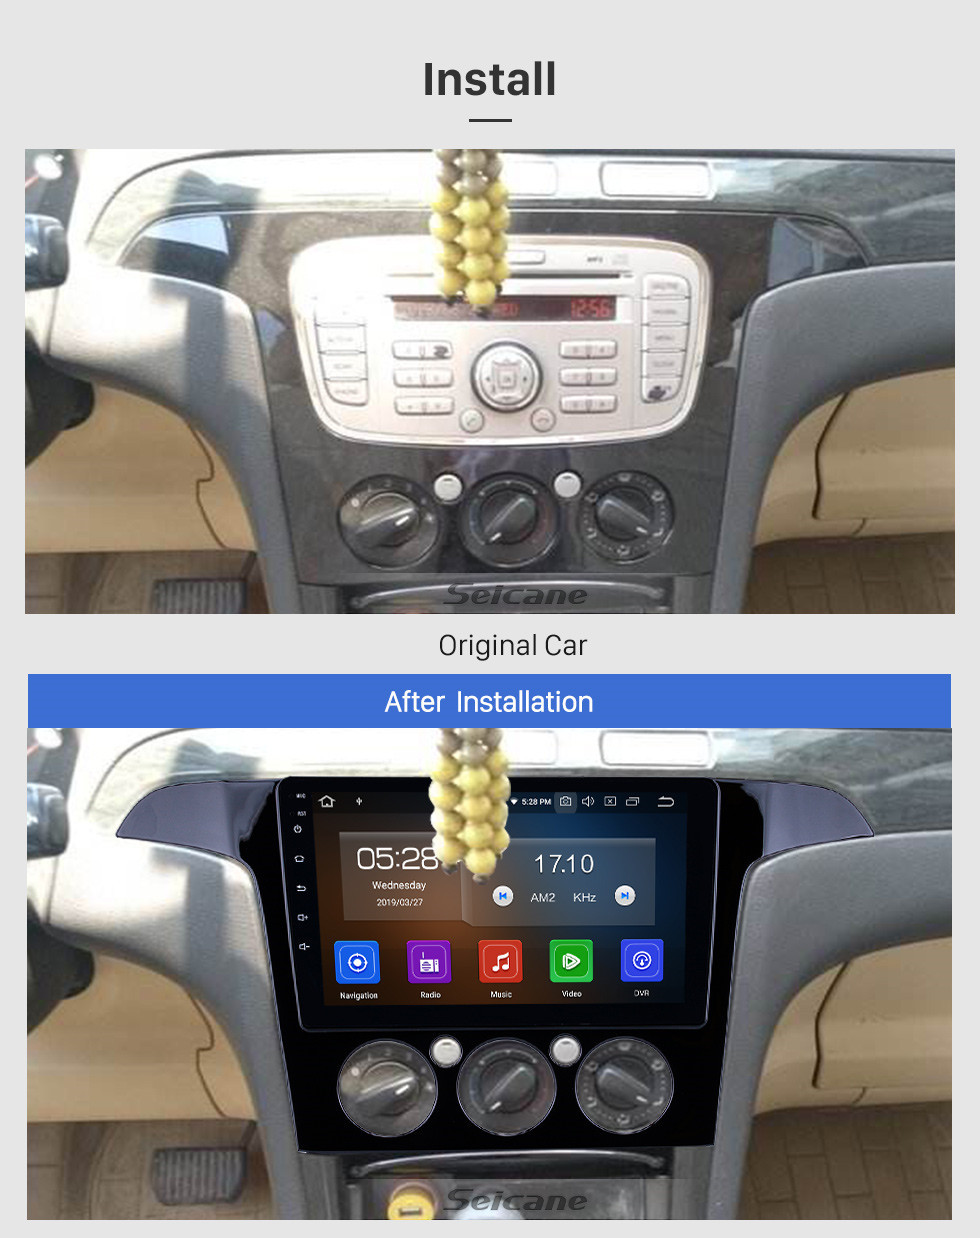 Seicane HD Touchscreen 2007-2008 Ford S-Max Manual A/C Android 10.0 9 inch GPS Navigation Radio Bluetooth WIFI Carplay support OBD2